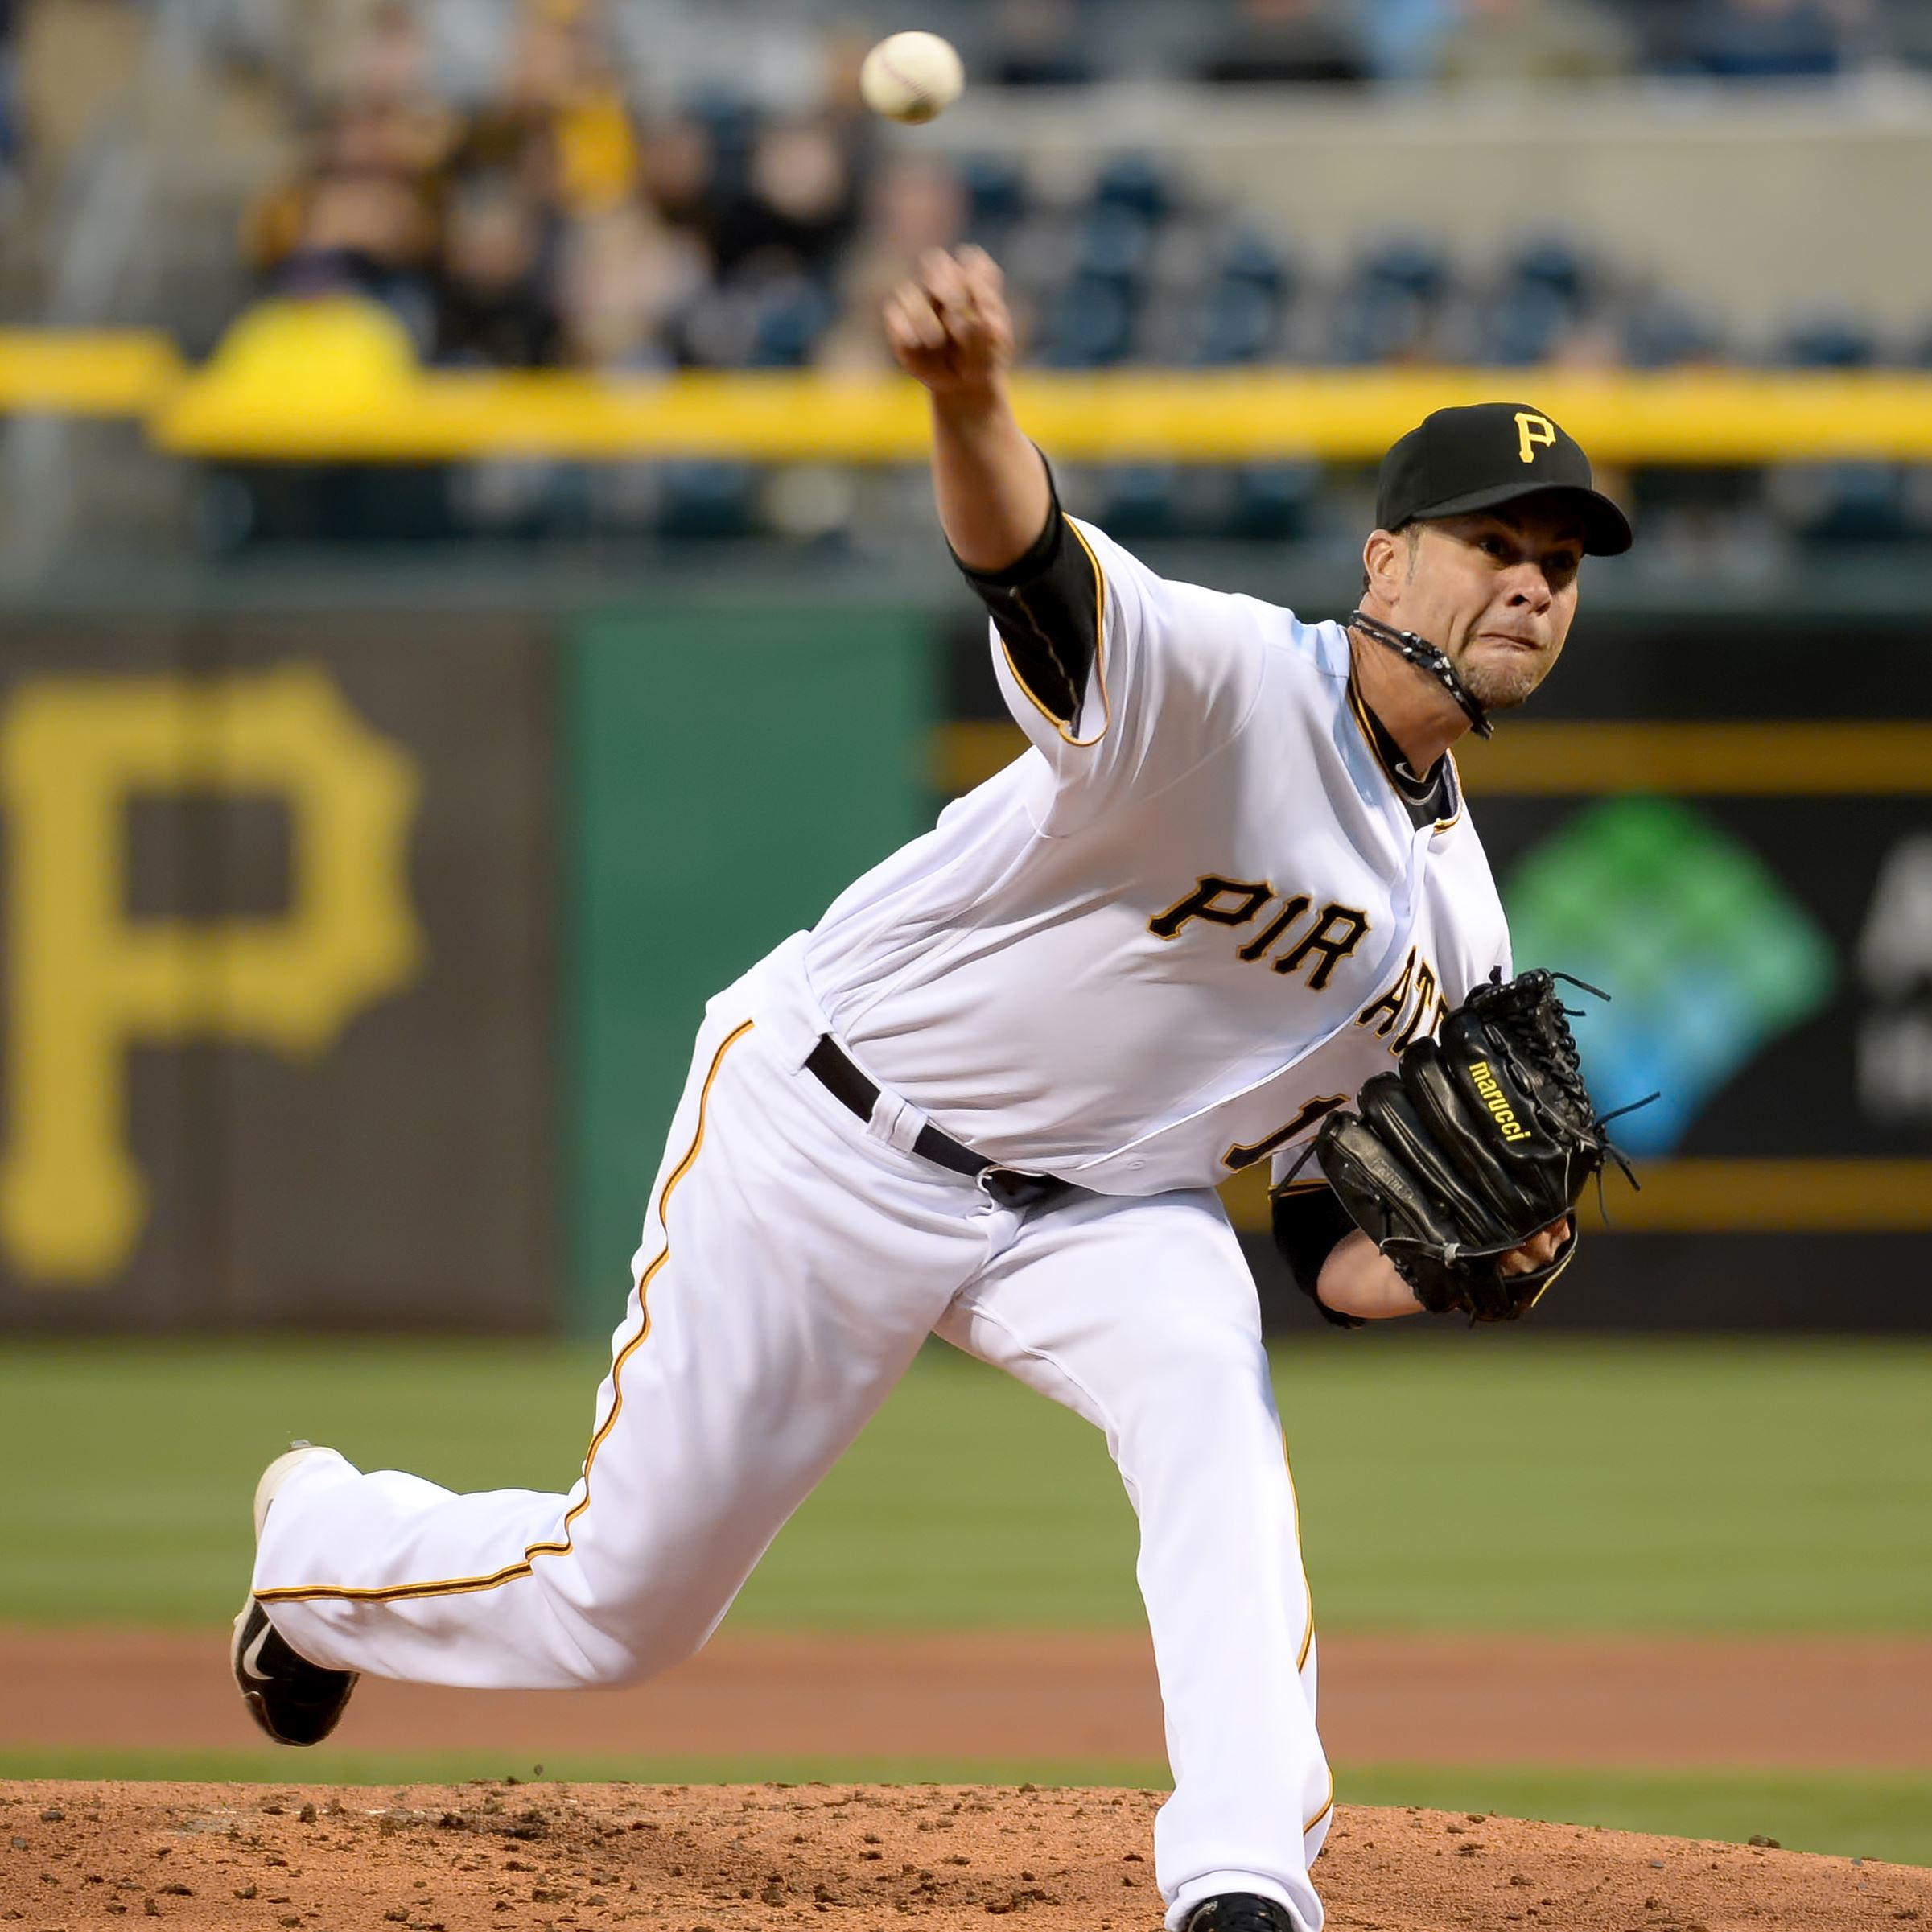 Pirates notebook: Partch, Luebke promoted to add fresh arms to bullpen